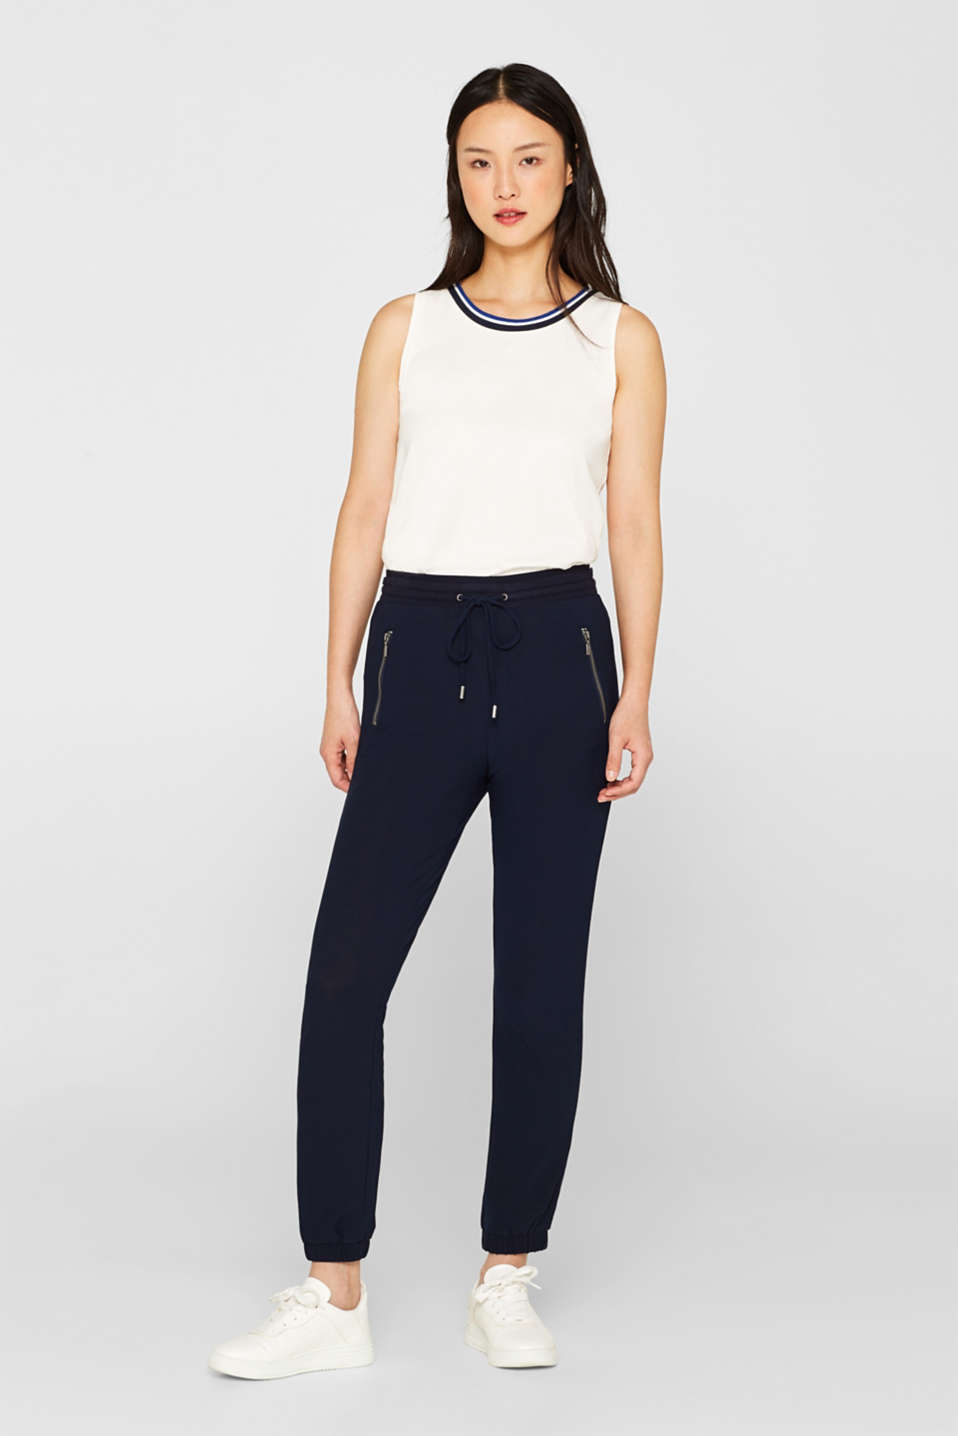 Esprit - Ankle-length tracksuit bottoms made of stretch crêpe